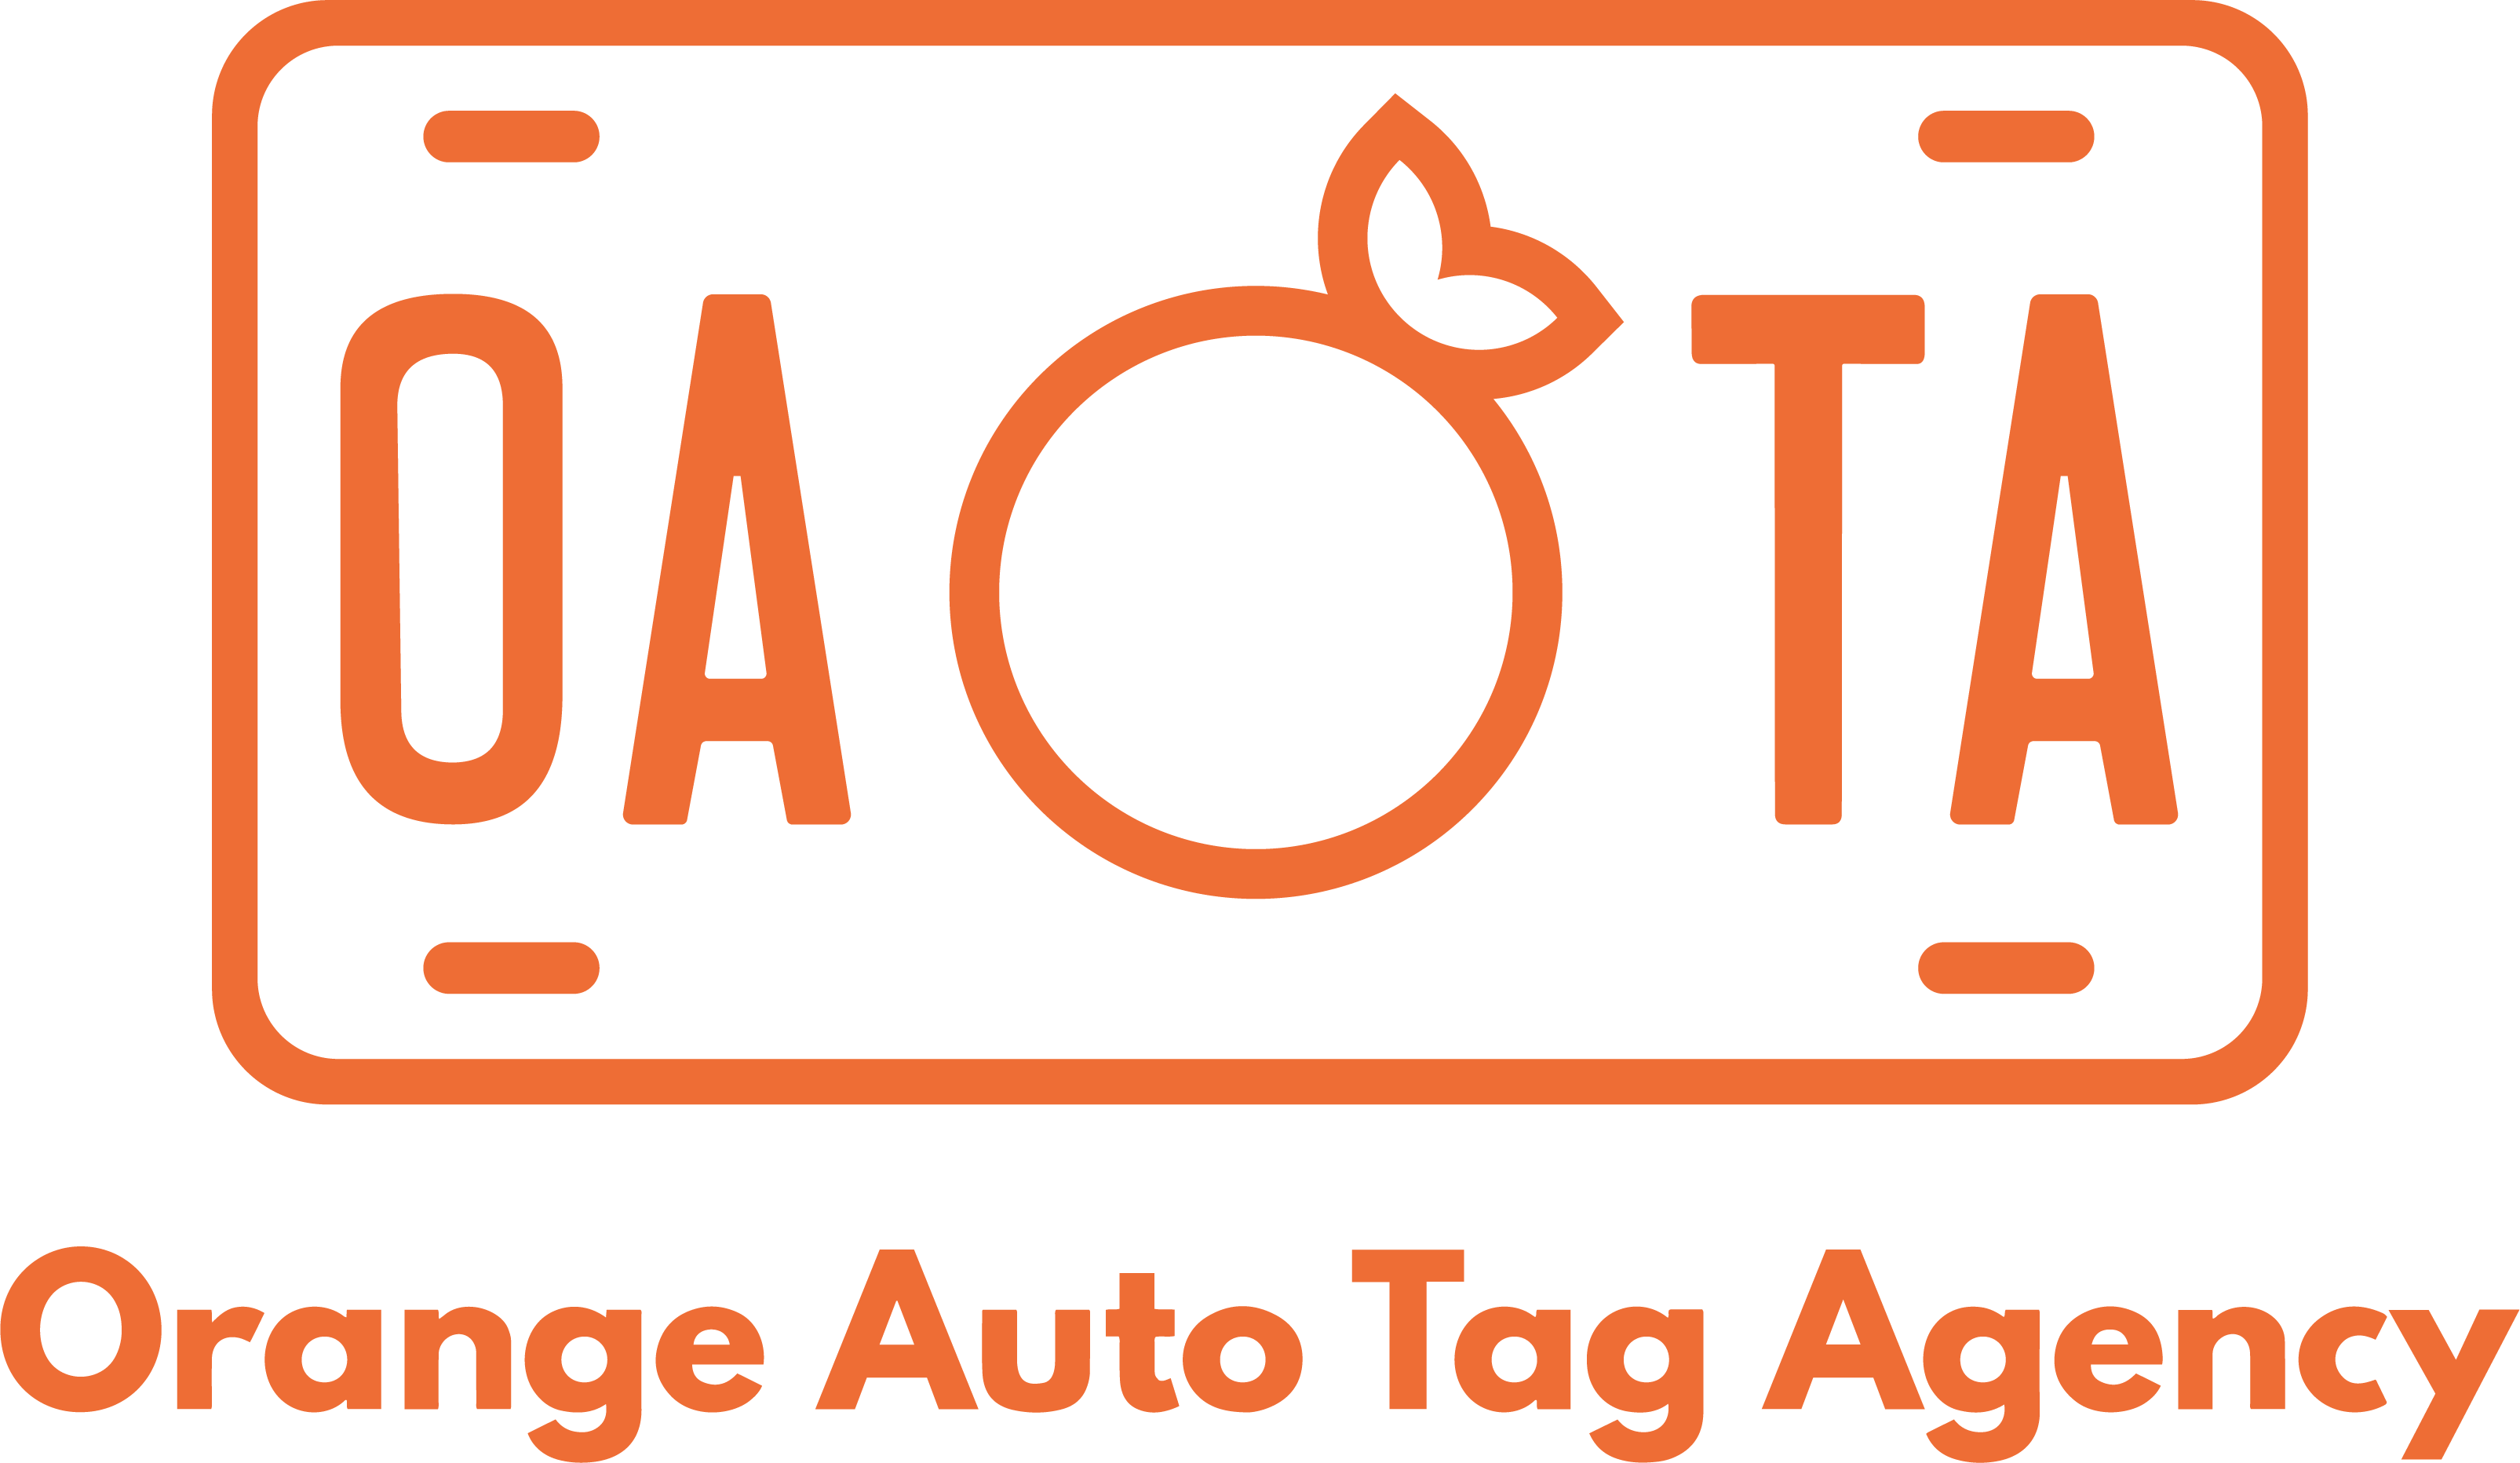 Orange Auto Tag Agency logo